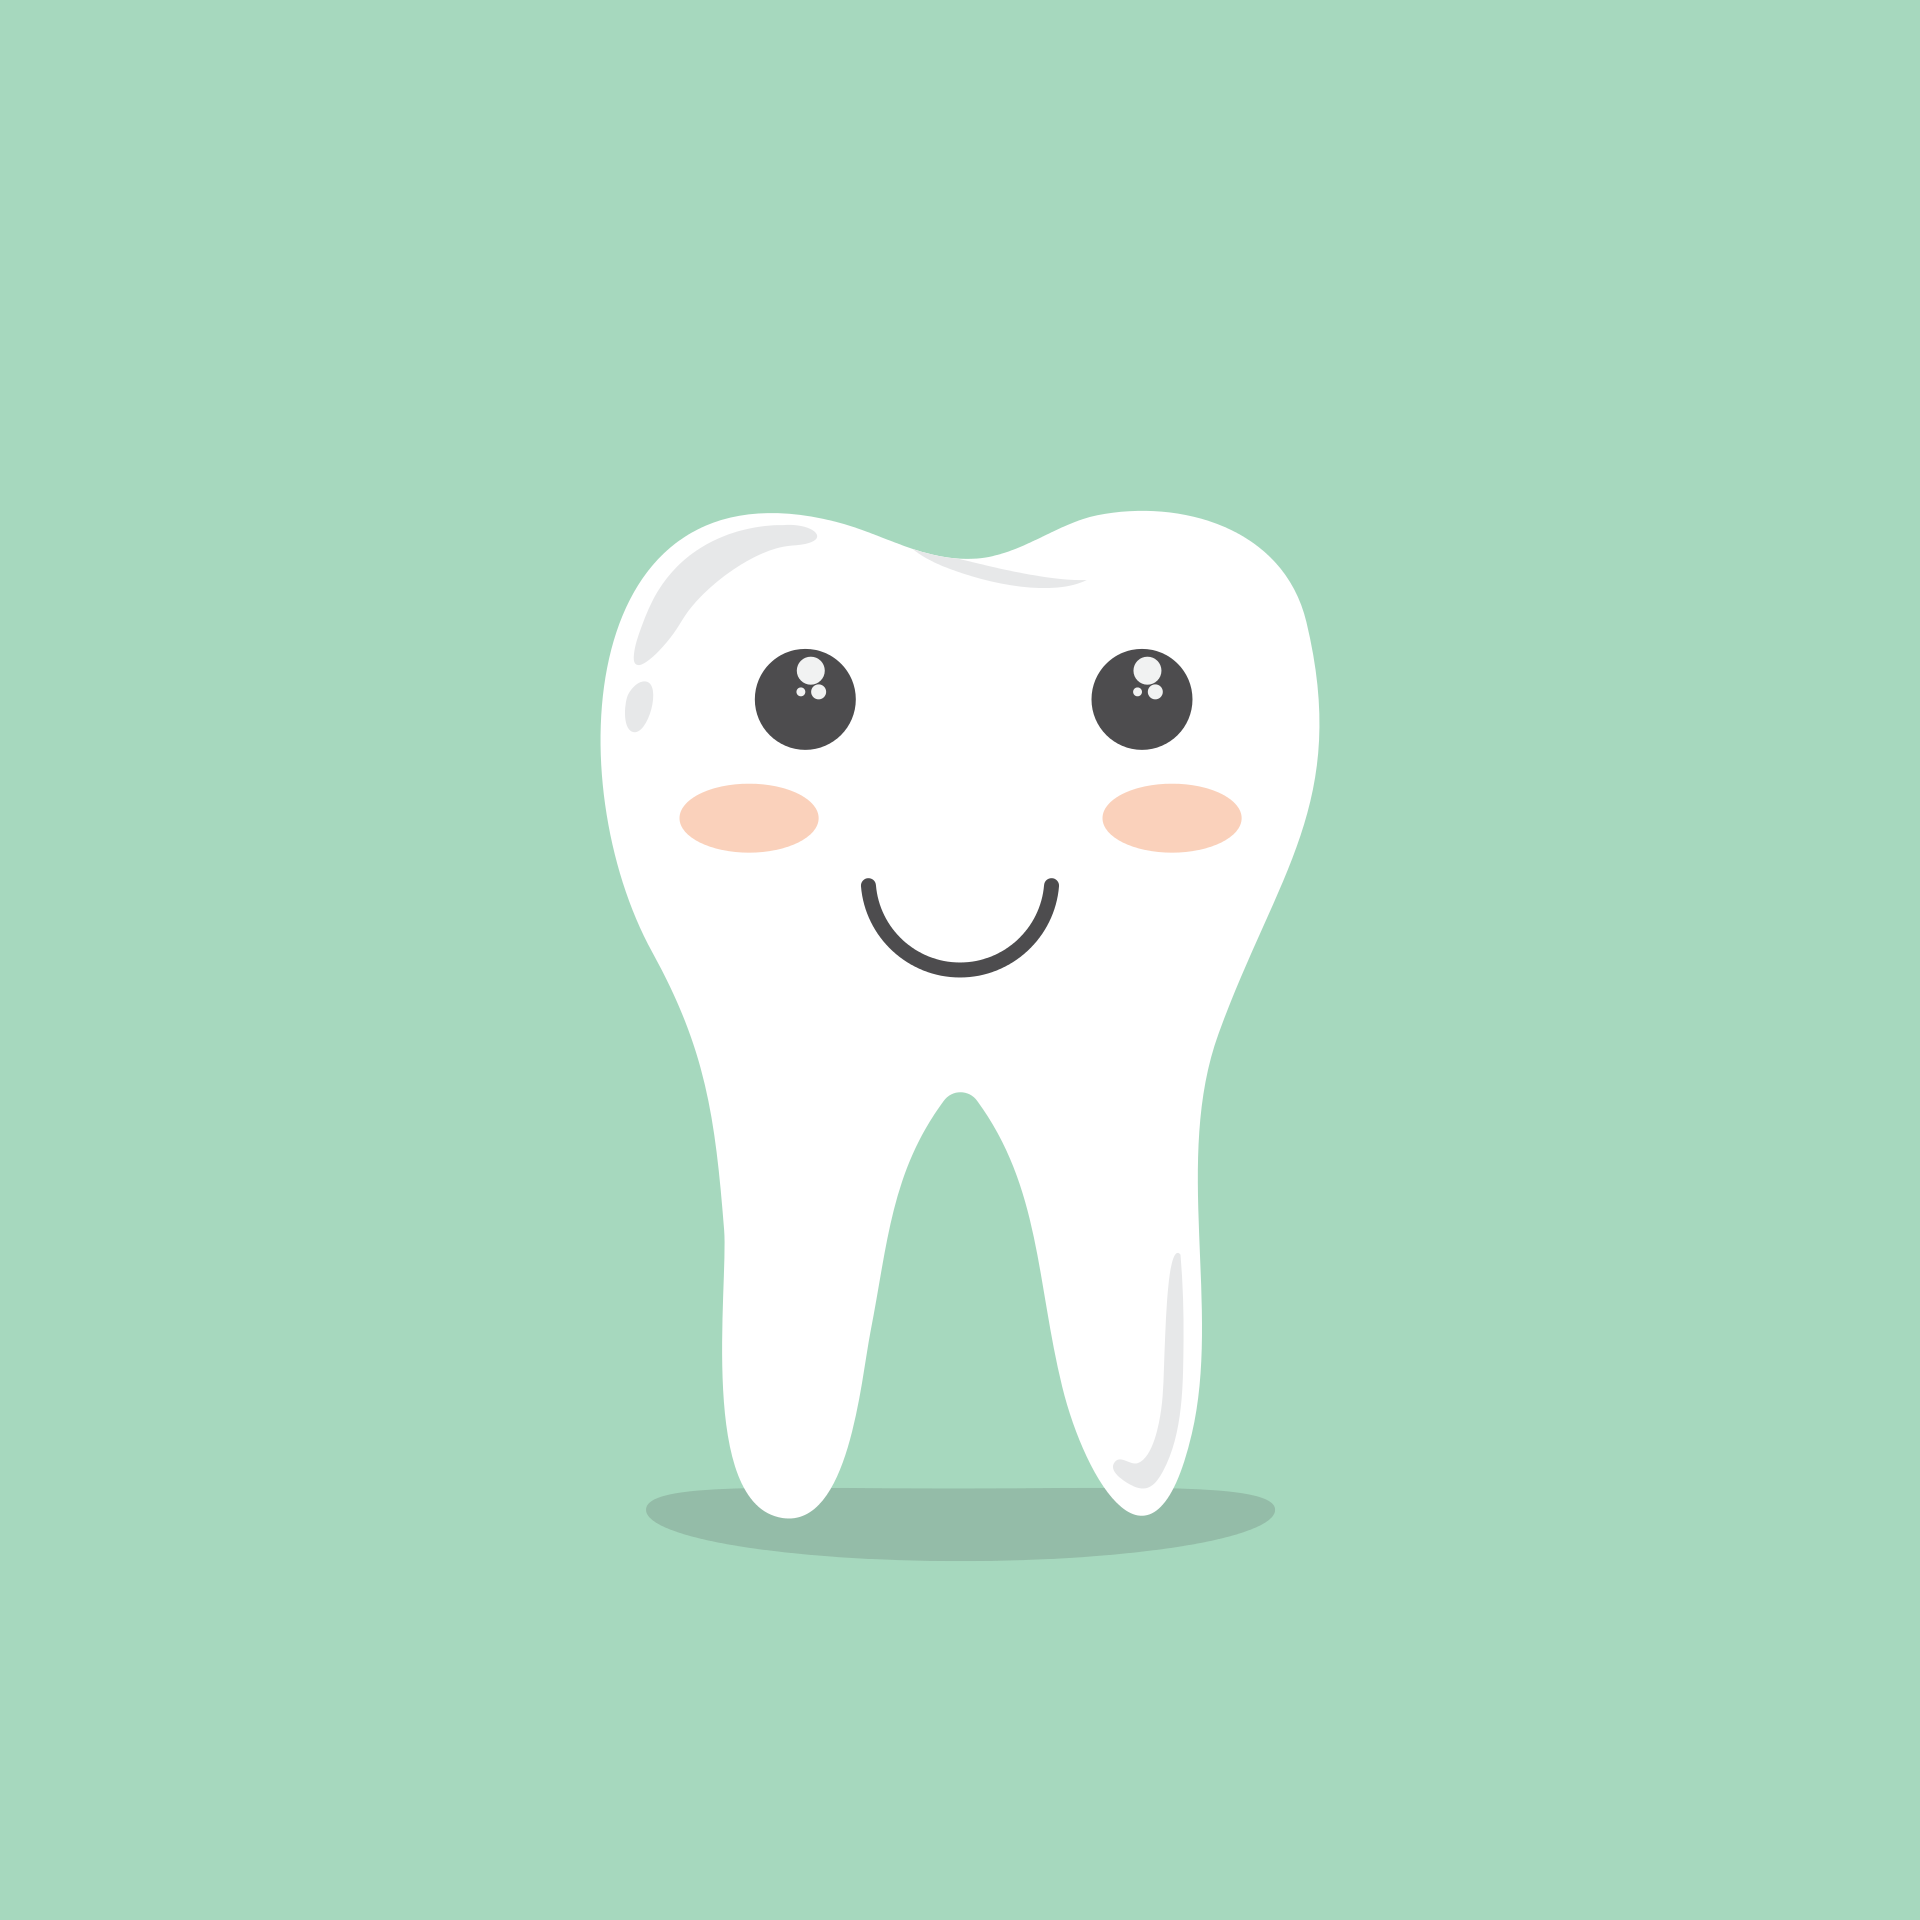 happy tooth | medicare dentist coverage